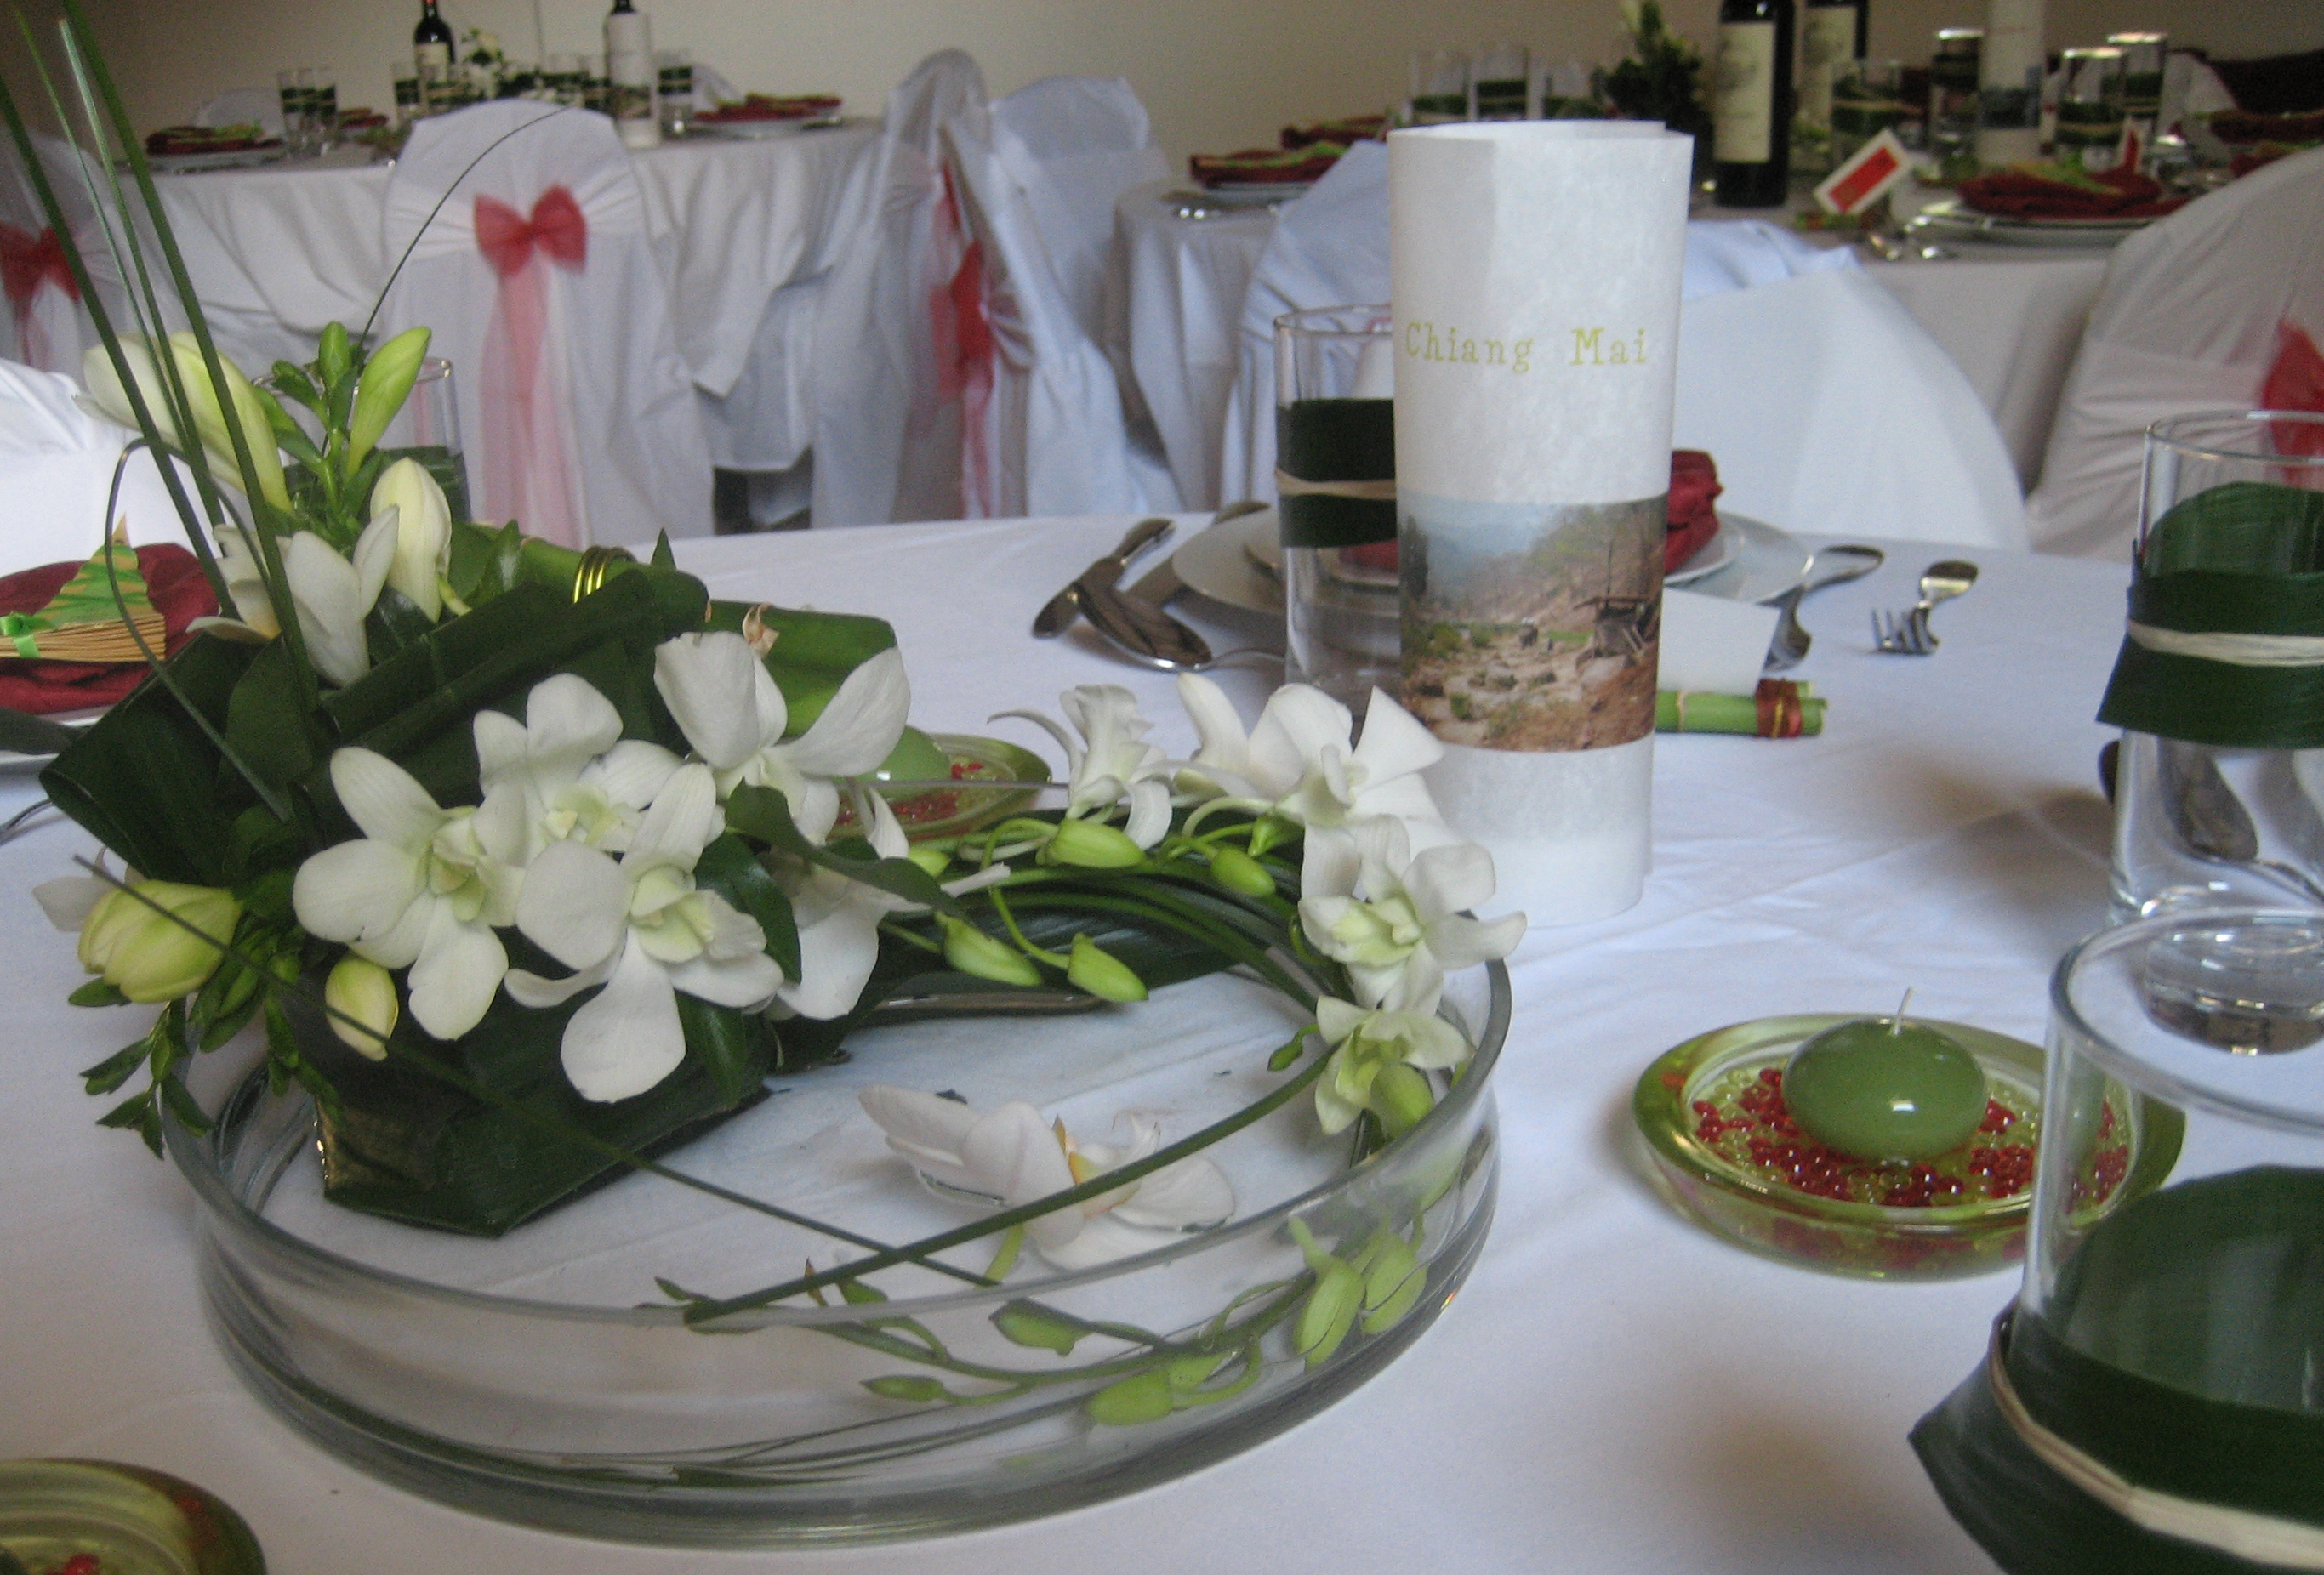 Theme Mariage Orchidee Decoration : Decoration de mariage theme orchidee idées et d